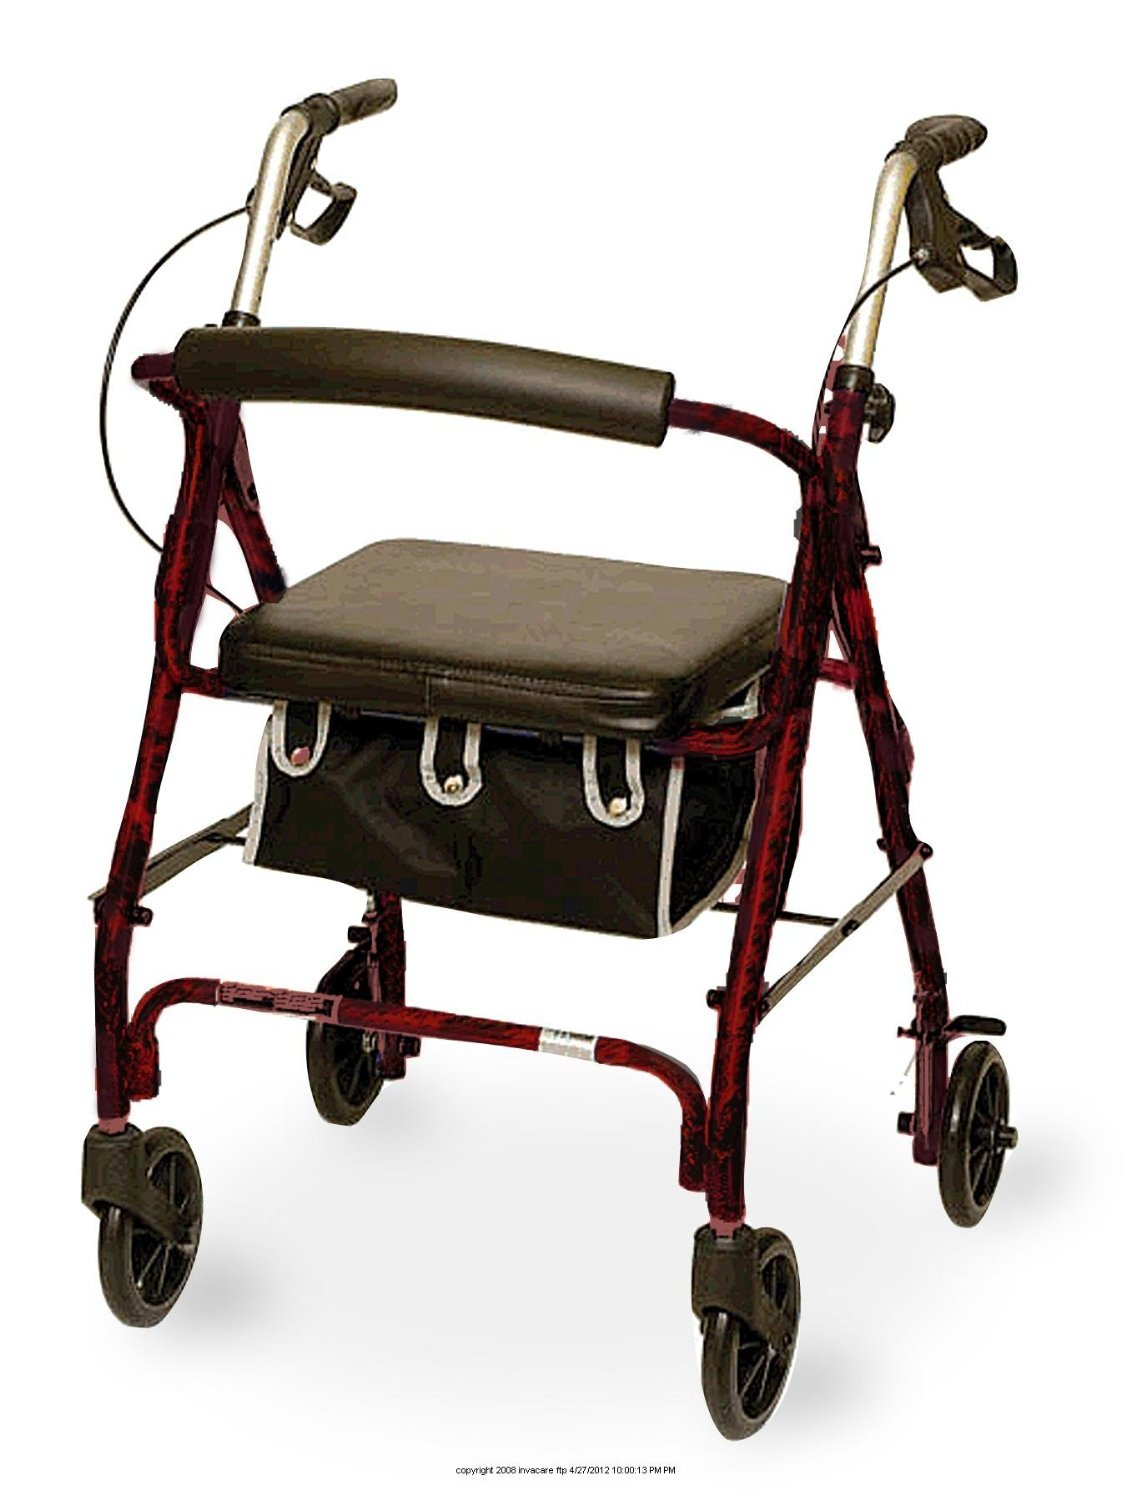 Invacare Supply Group Junior Sized Rollator w/ Loop Brakes & Basket